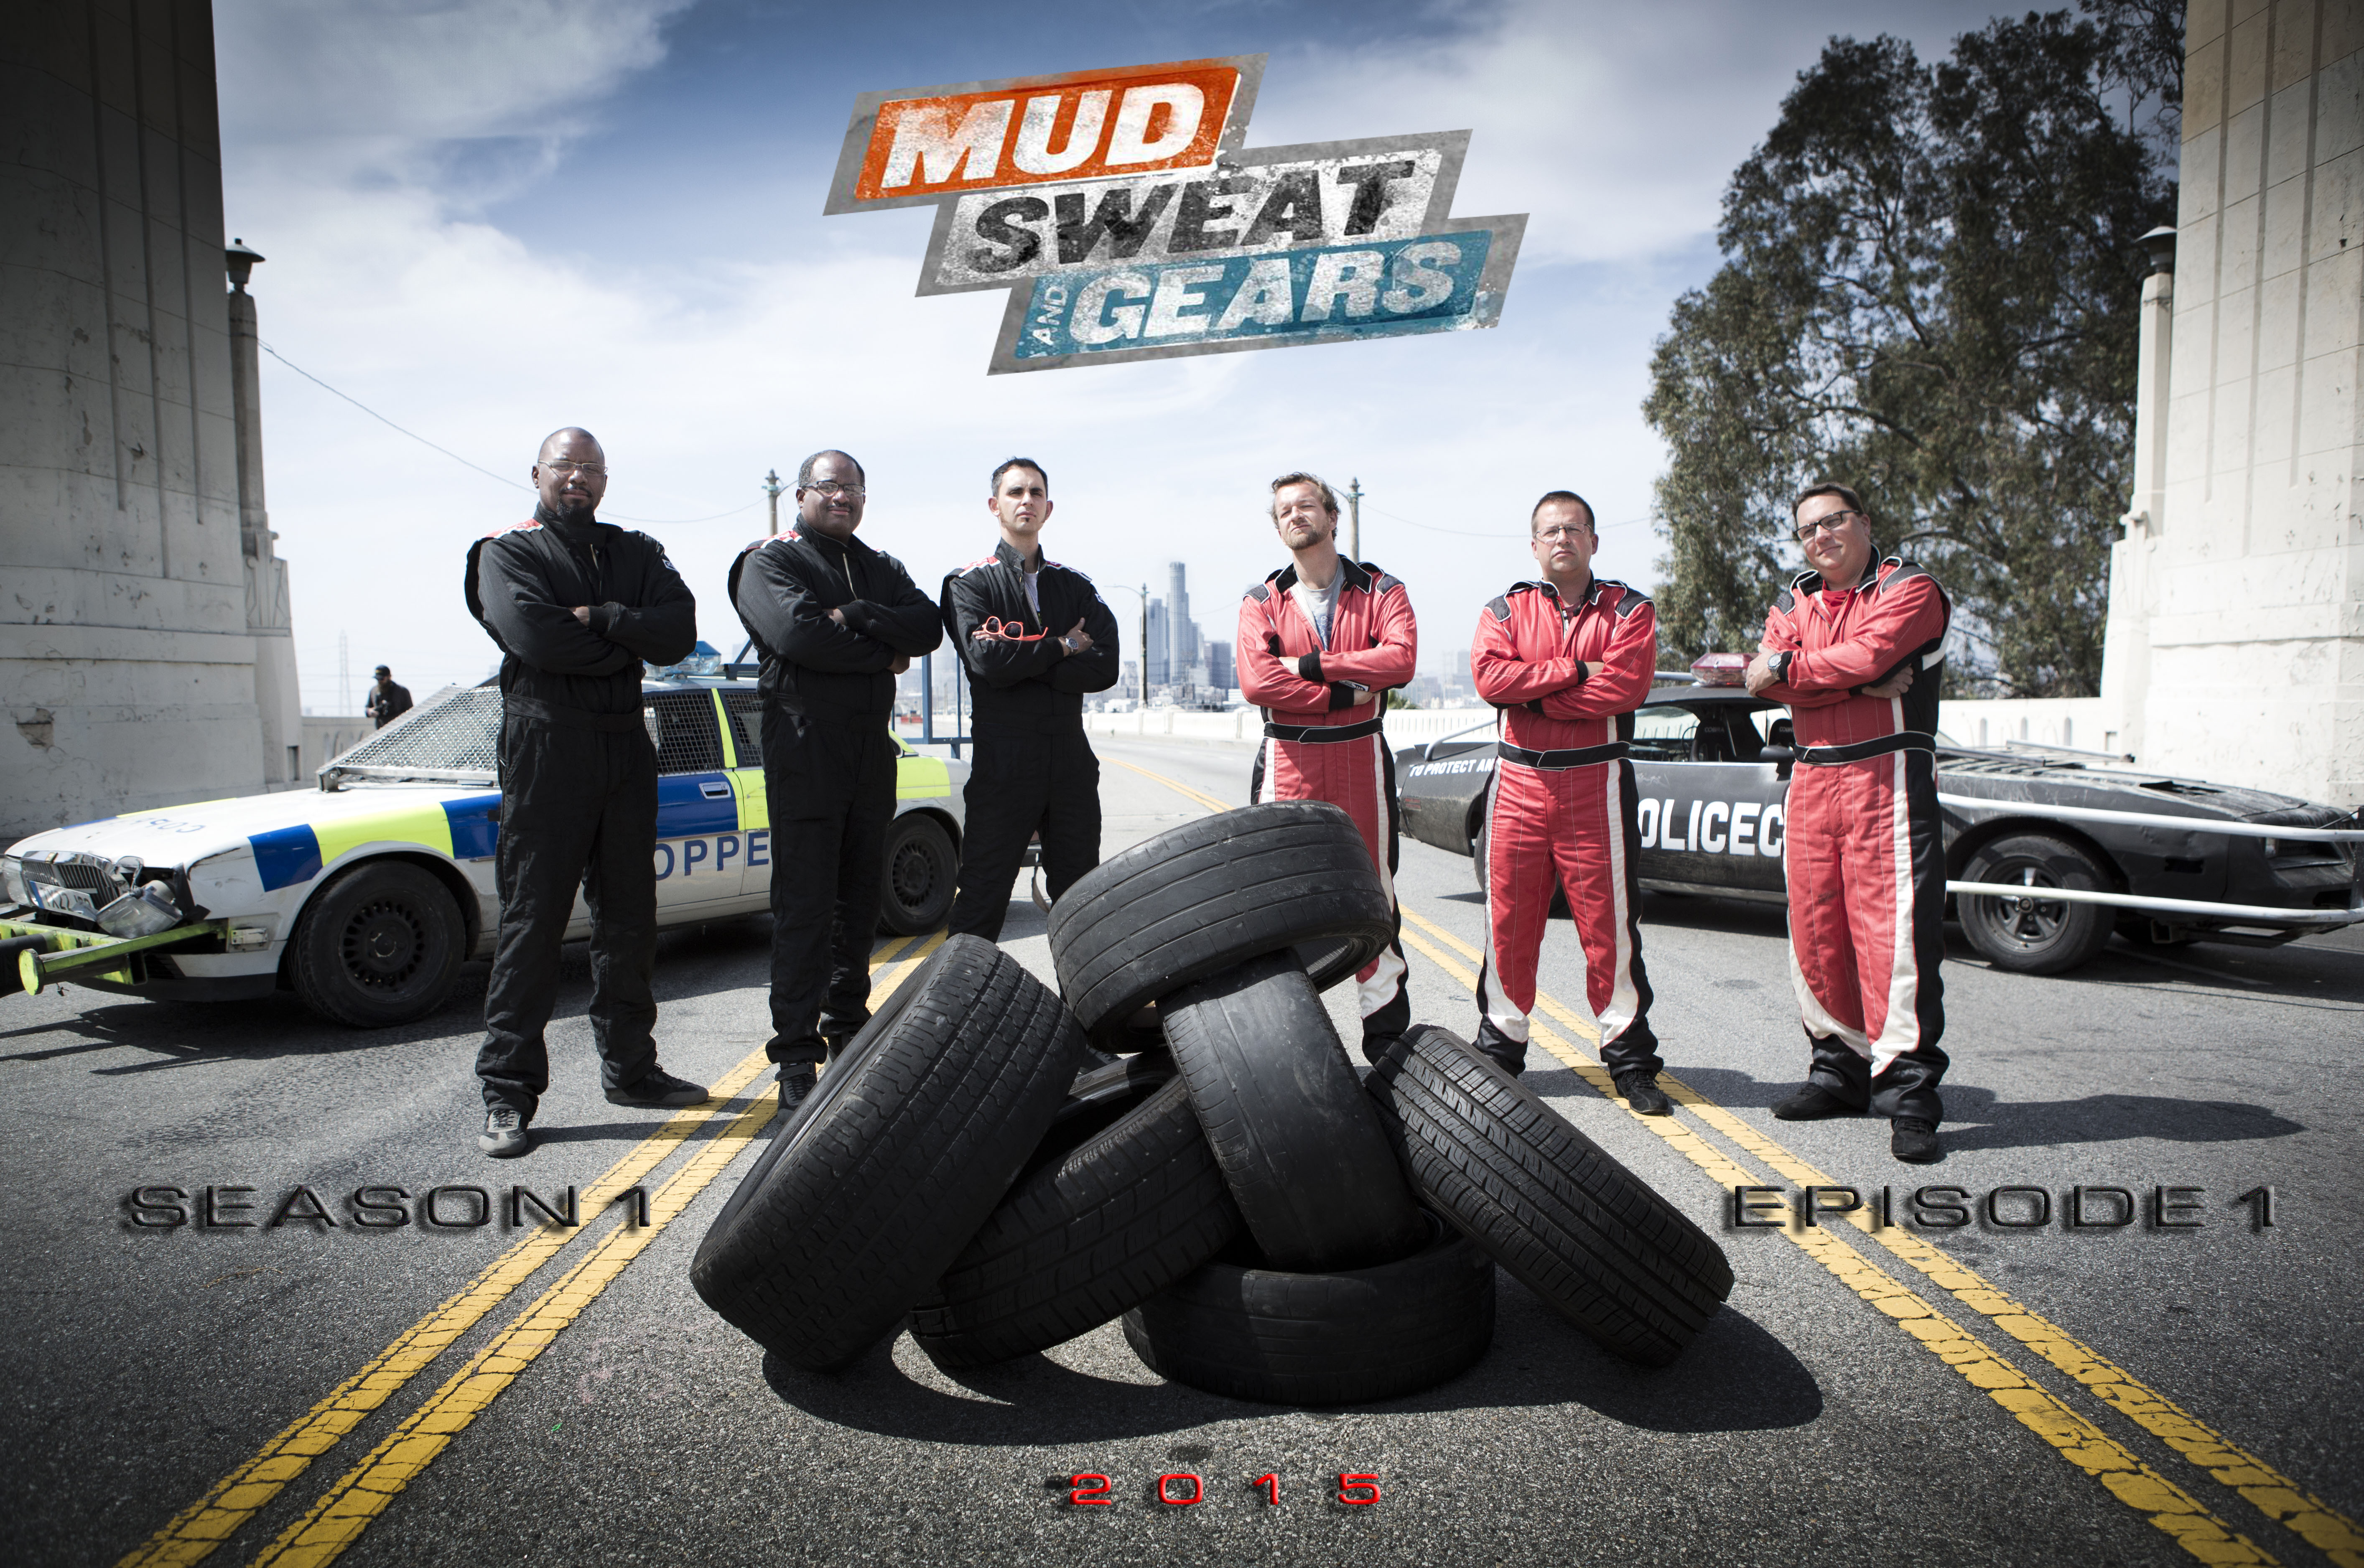 Mud Sweat And Gears Season Episode And Krider Racing Racer Boy - British car show bbc